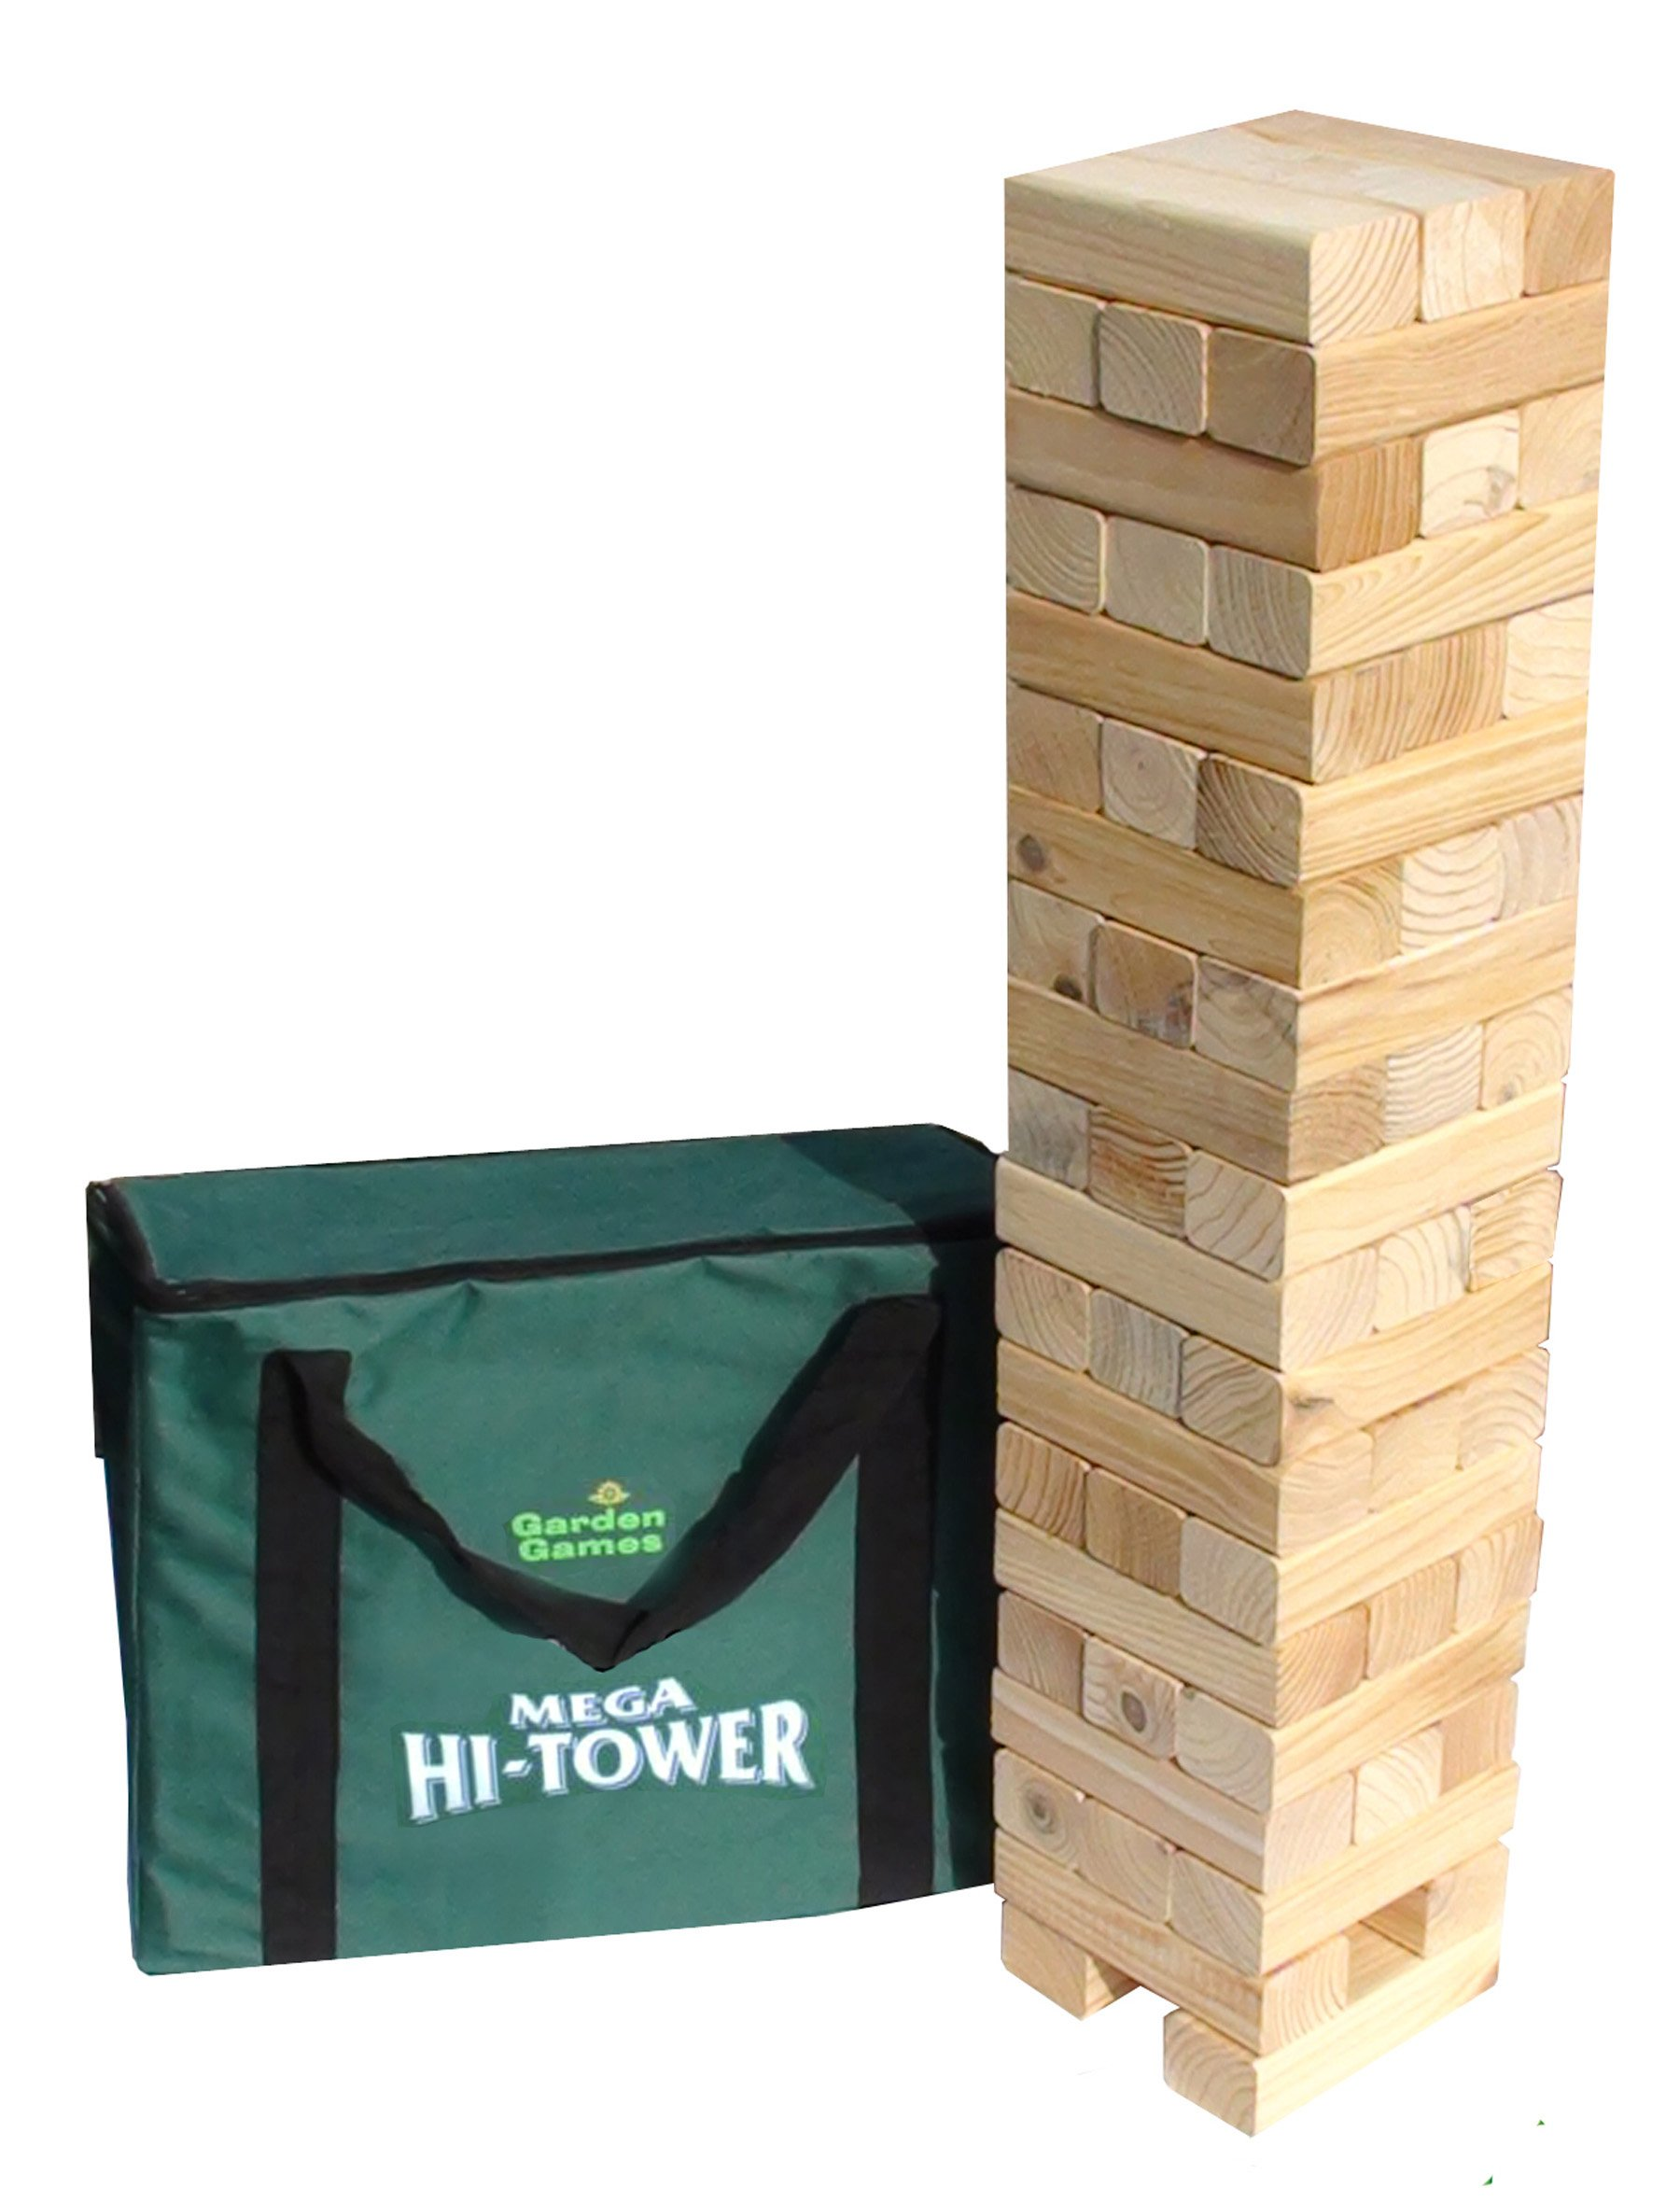 Mega Hi-Tower - Extra Tall Tumble Blocks Up to 6ft During Play (Includes Carry Bag)